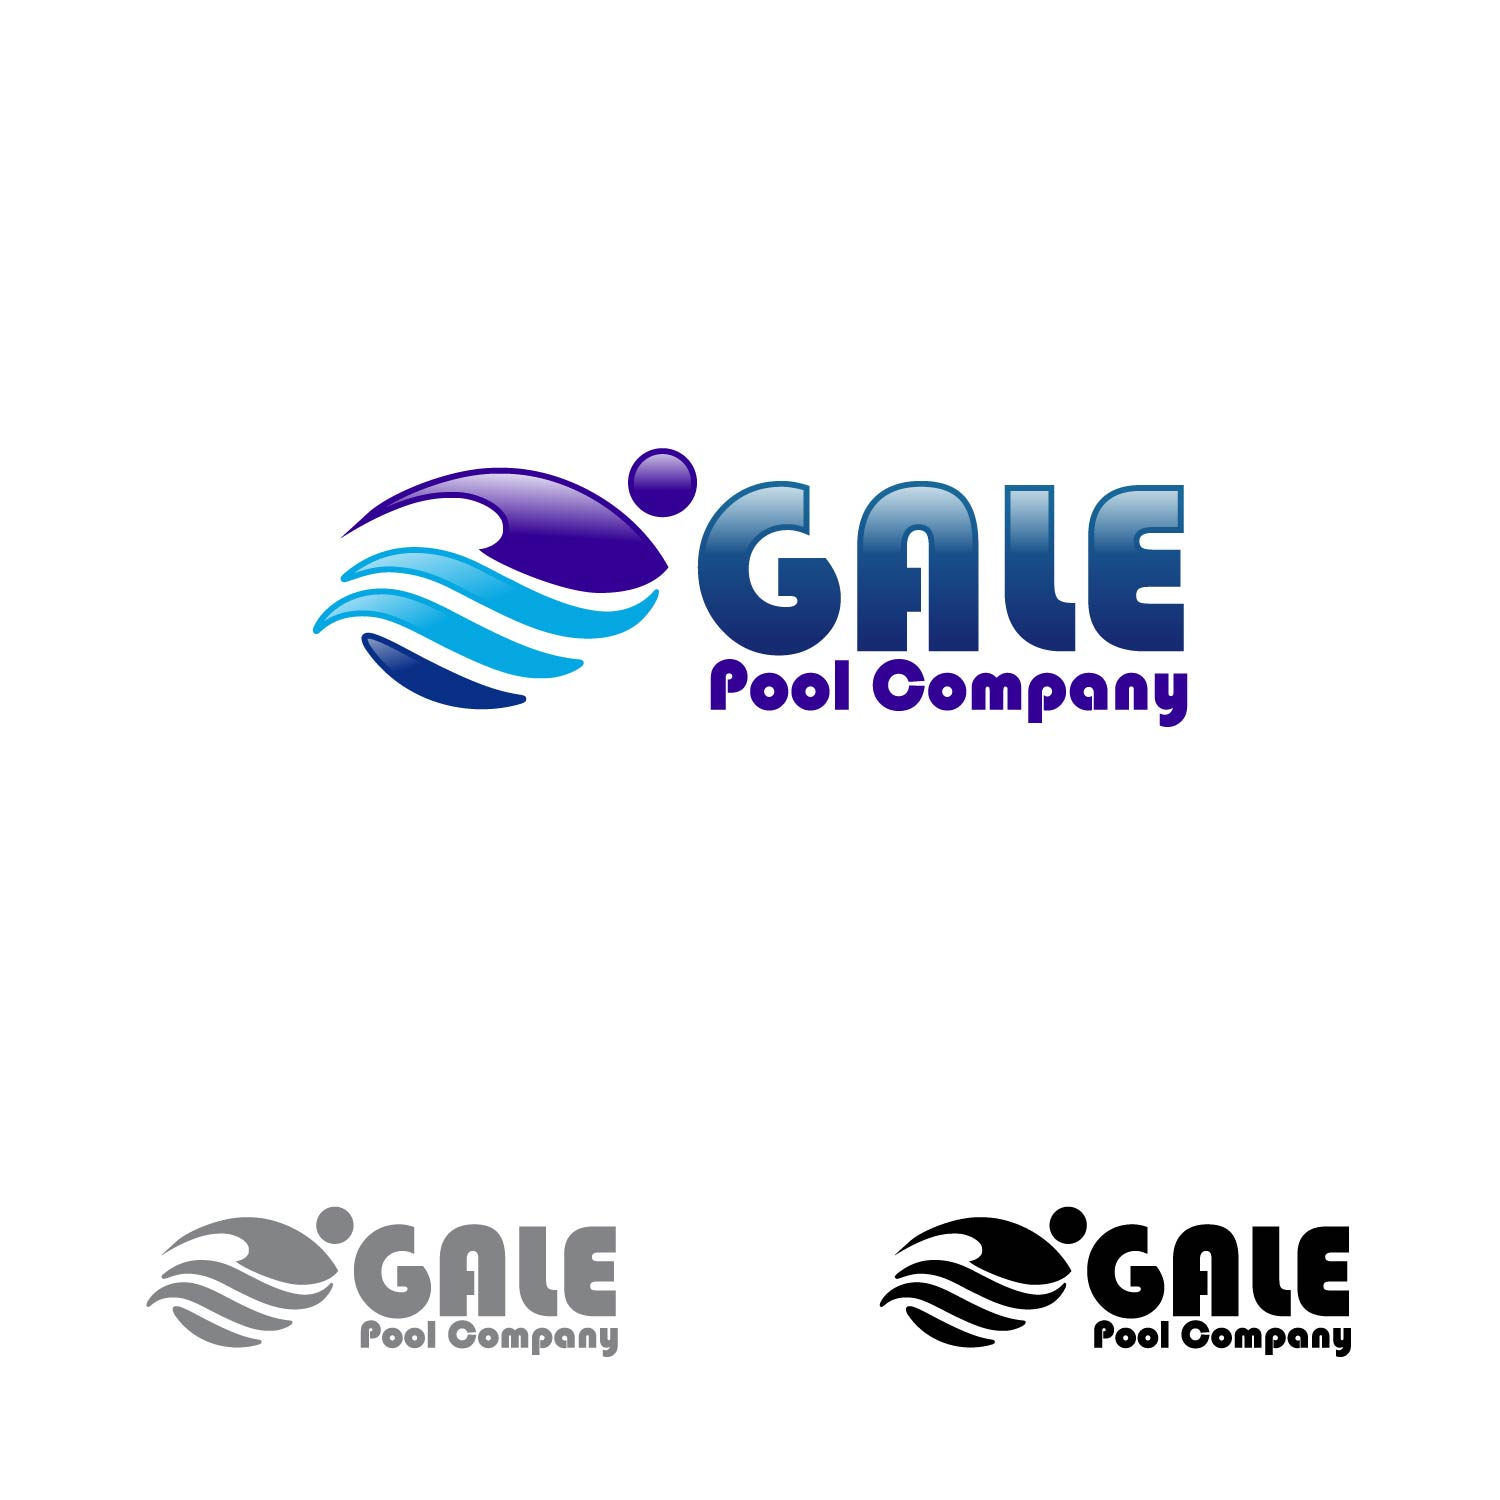 Logo Design by lagalag - Entry No. 106 in the Logo Design Contest Imaginative Logo Design for Gale Pool Company.